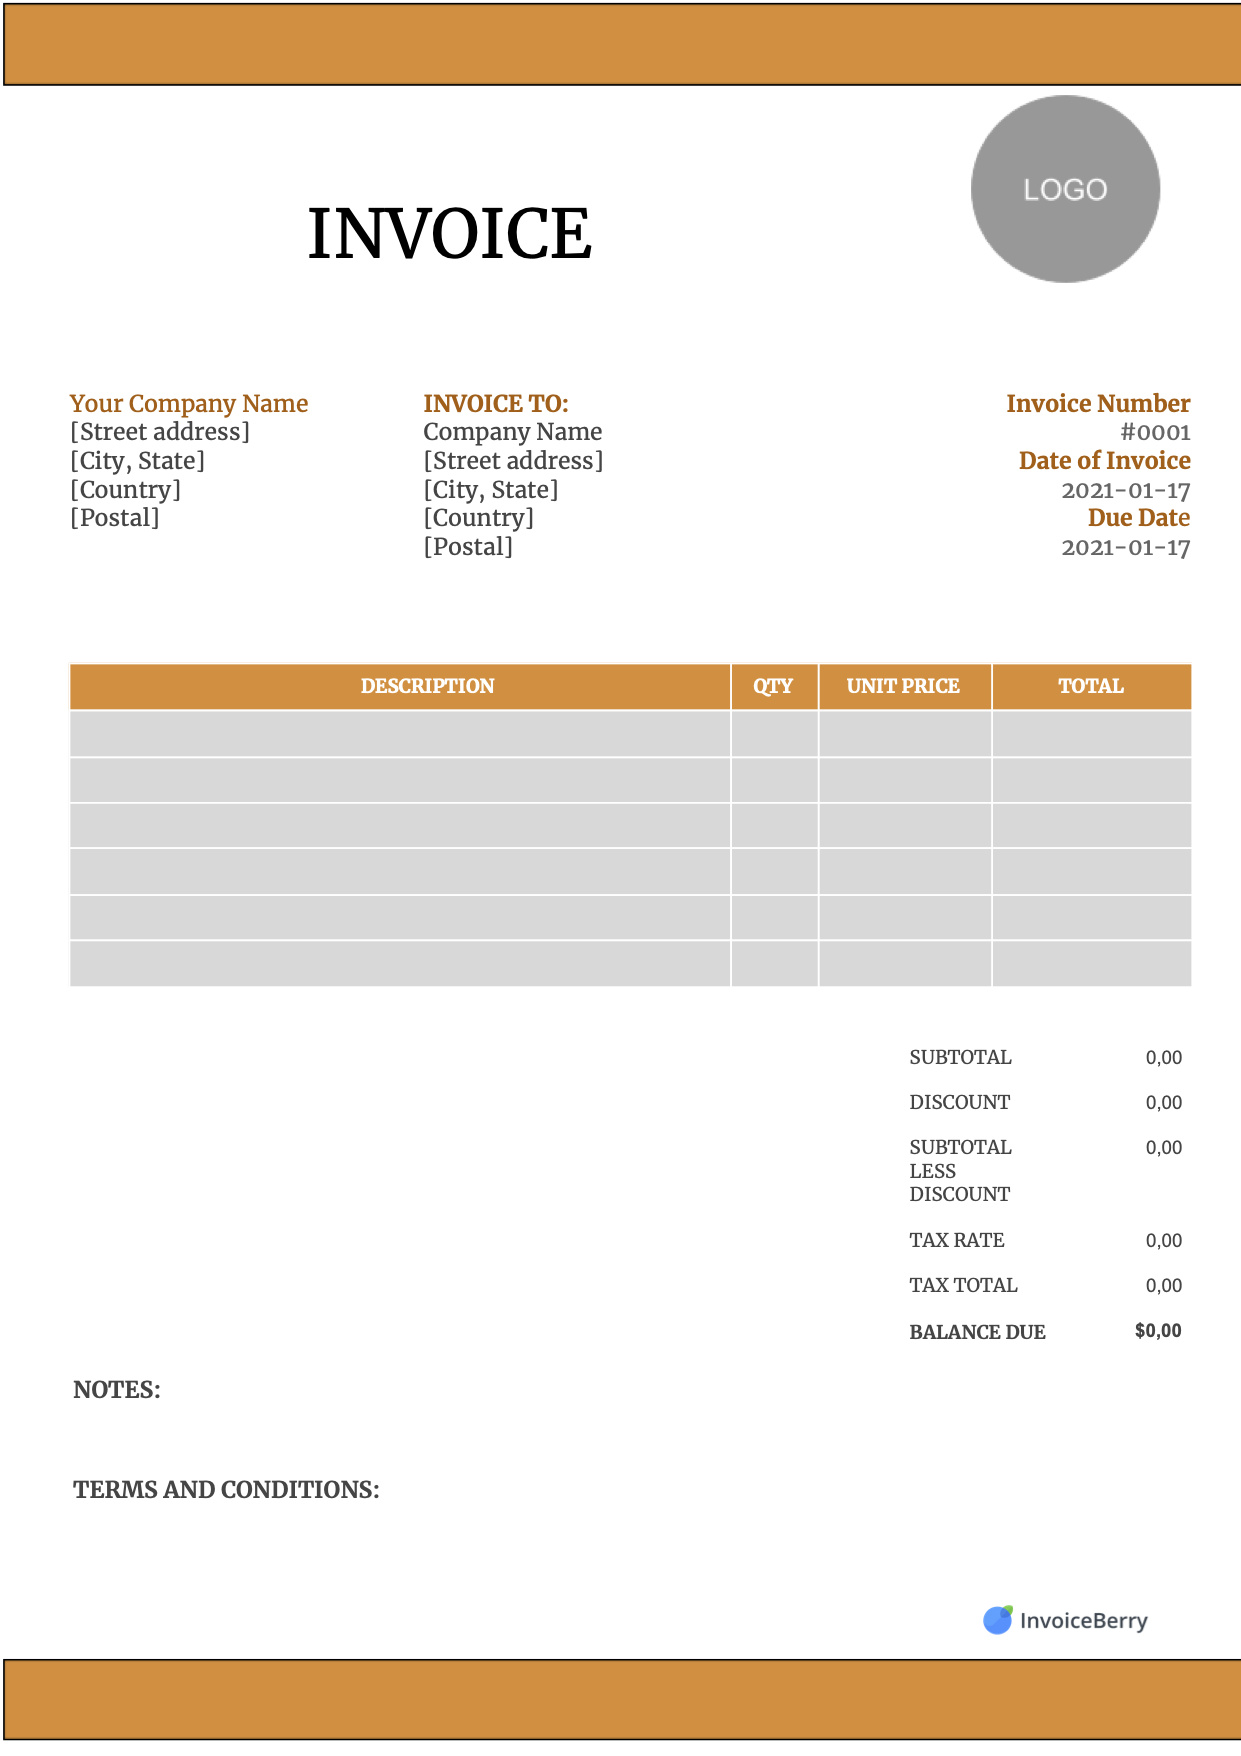 Free Canada Invoice Templates For Contractors And Companies Invoiceberry